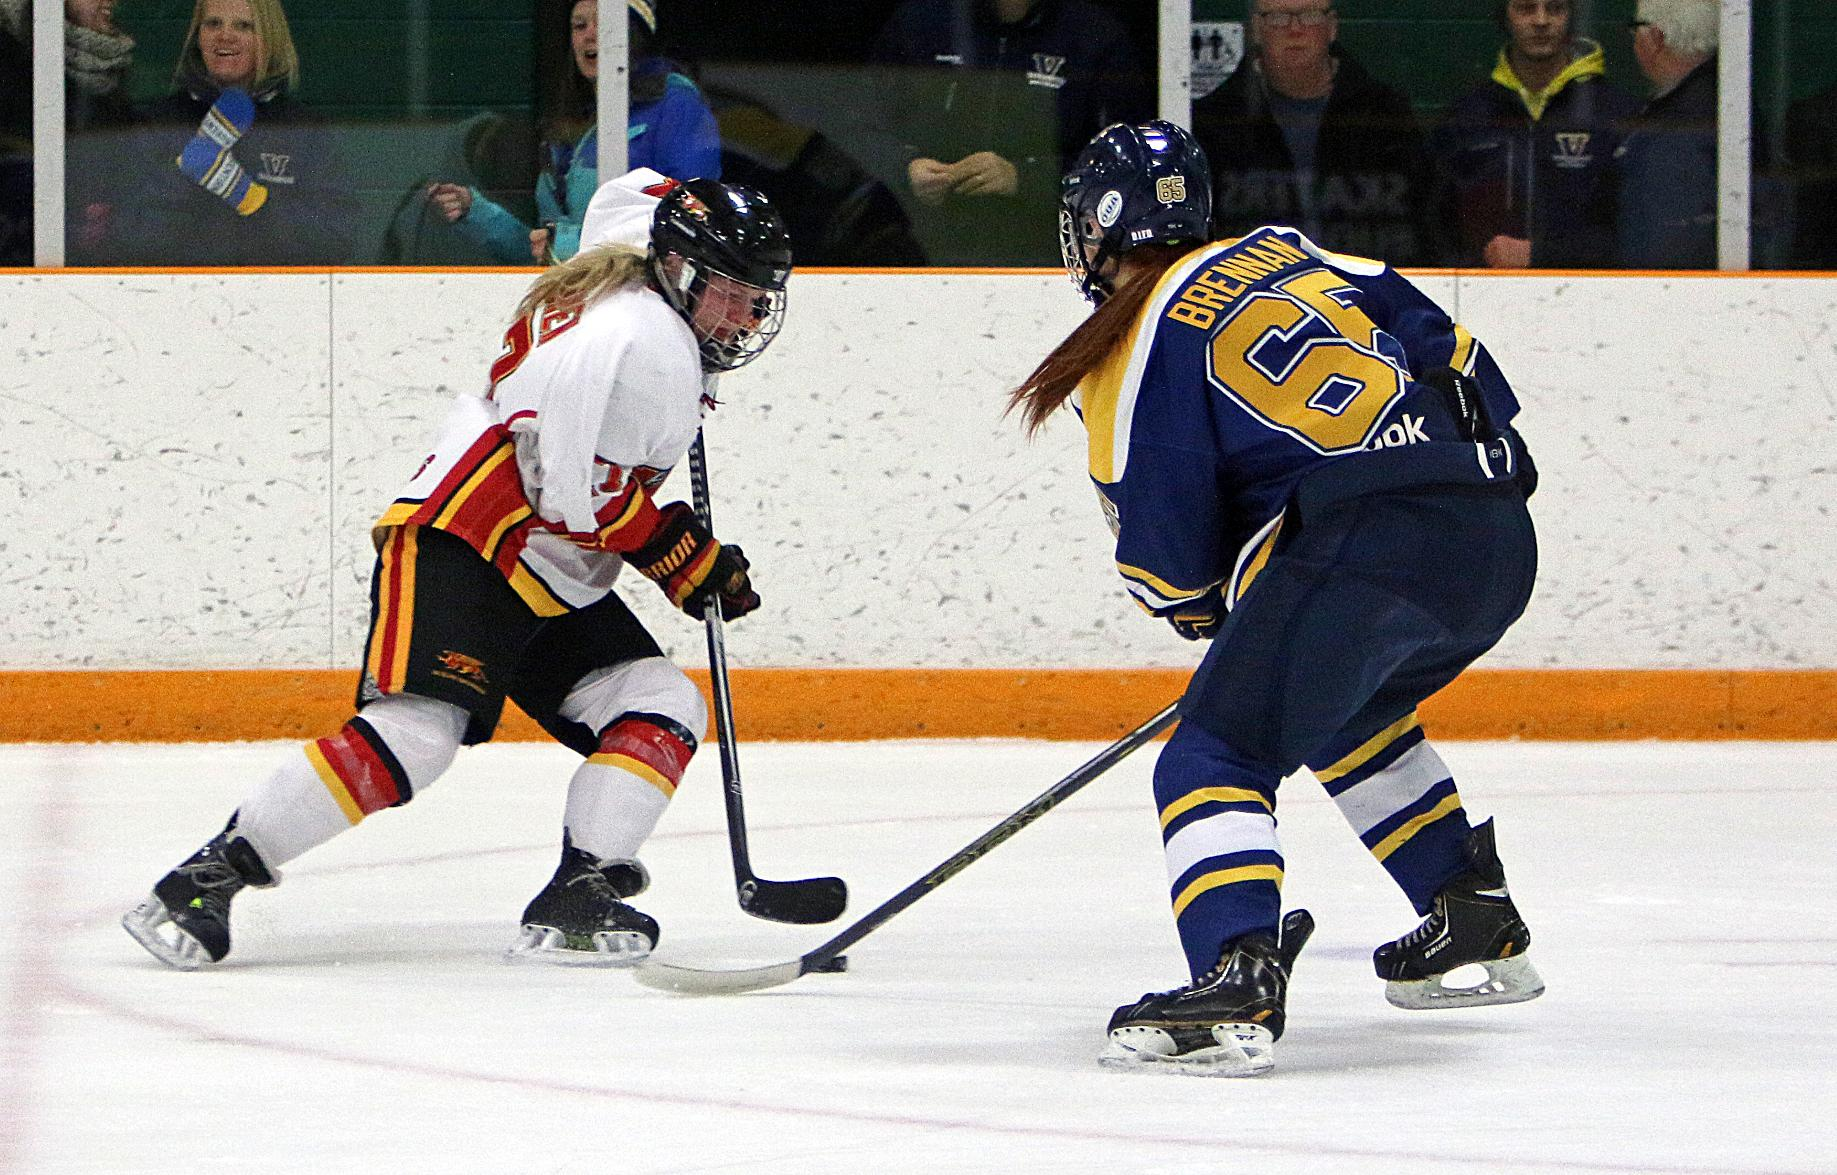 WHKY | Voyageurs Regroup for 5-0 Win at Laurier